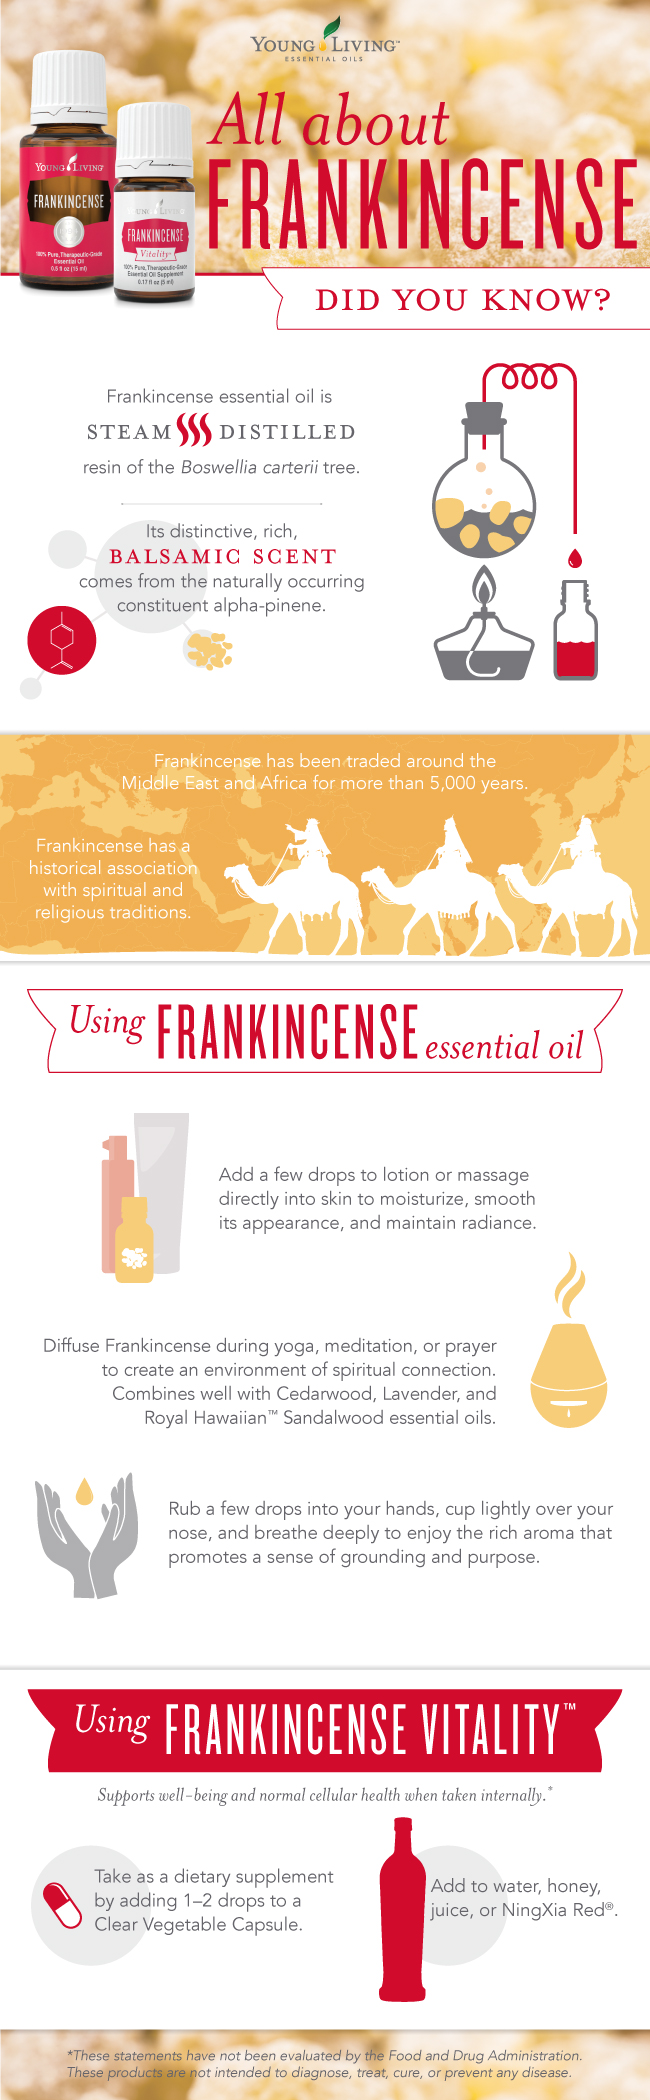 Blog-Frankincense_Infographic_US_0816_sk